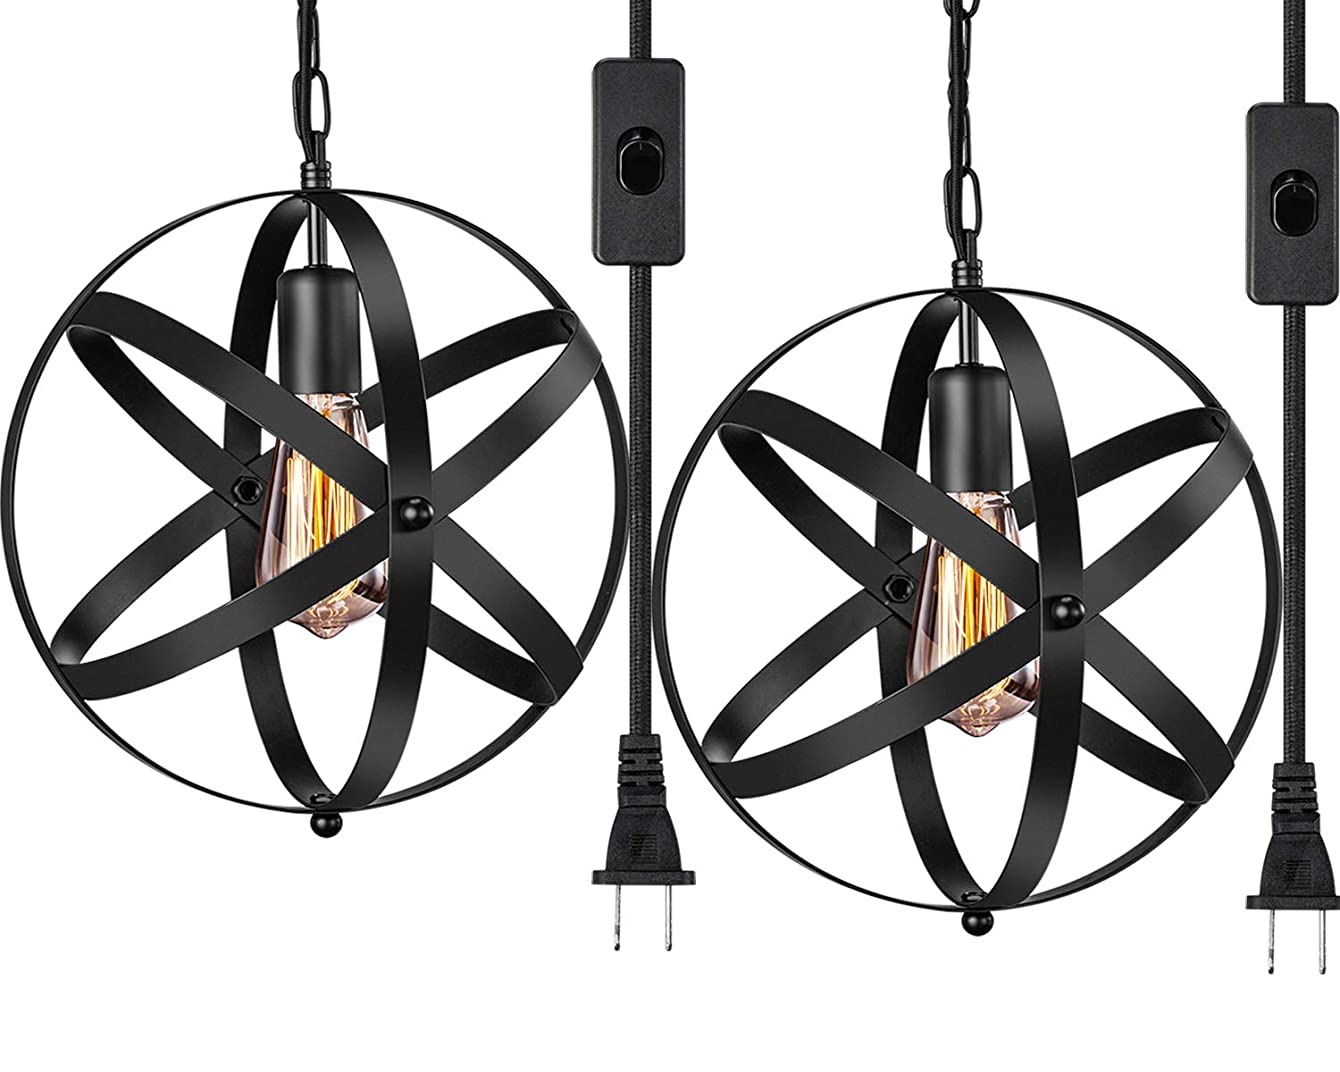 Industrial Plug in Pendant Light INNOCCY E26 E27 Industrial Hanging Light Metal Globe Vintage Pendant Light Fixture with 14.8Ft Hanging Cord and ON/OFF Switch 2 Pack